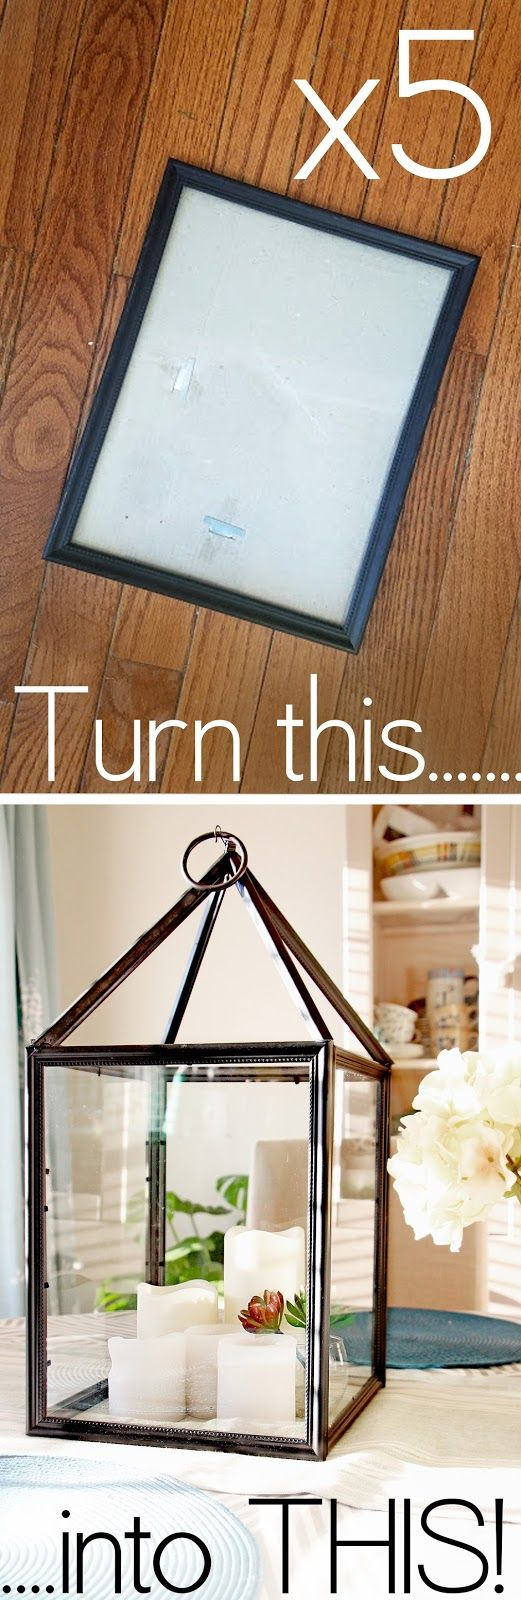 I've been redecorating my dining room but doing so on a very tight budget. L…